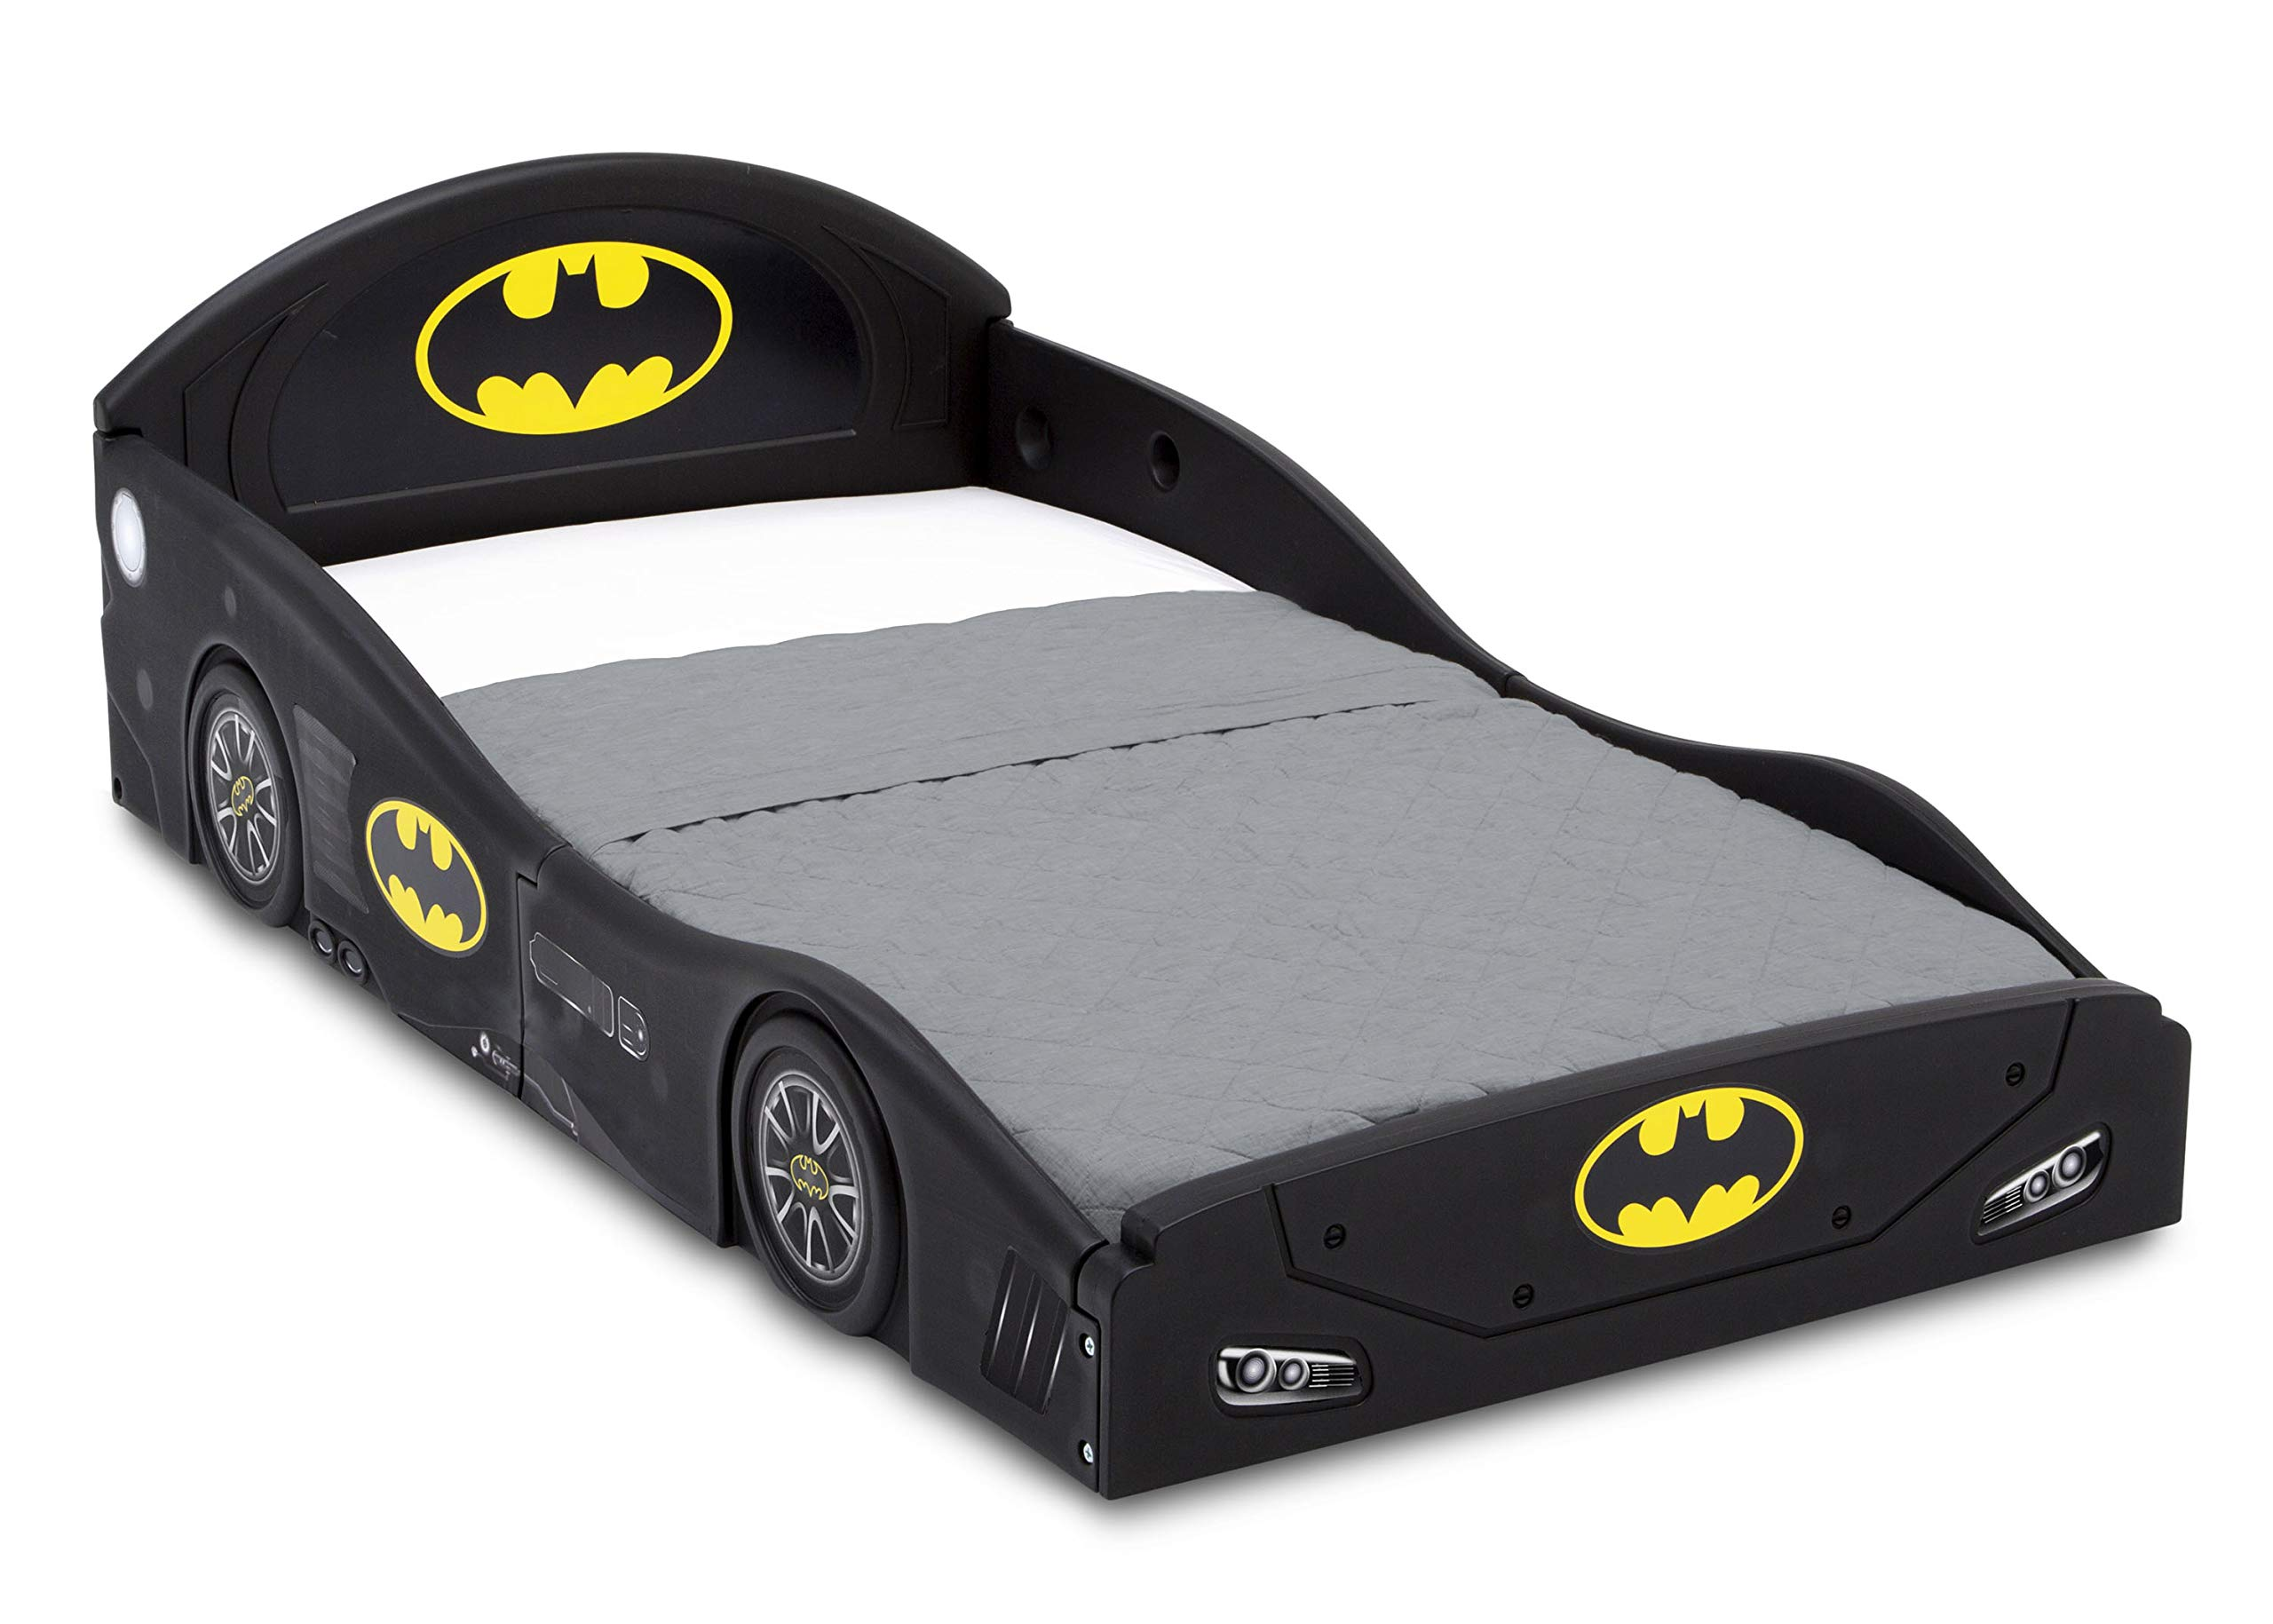 DC Comics Batman Batmobile Car Sleep and Play Toddler Bed with Attached Guardrails by Delta Children by Delta Children